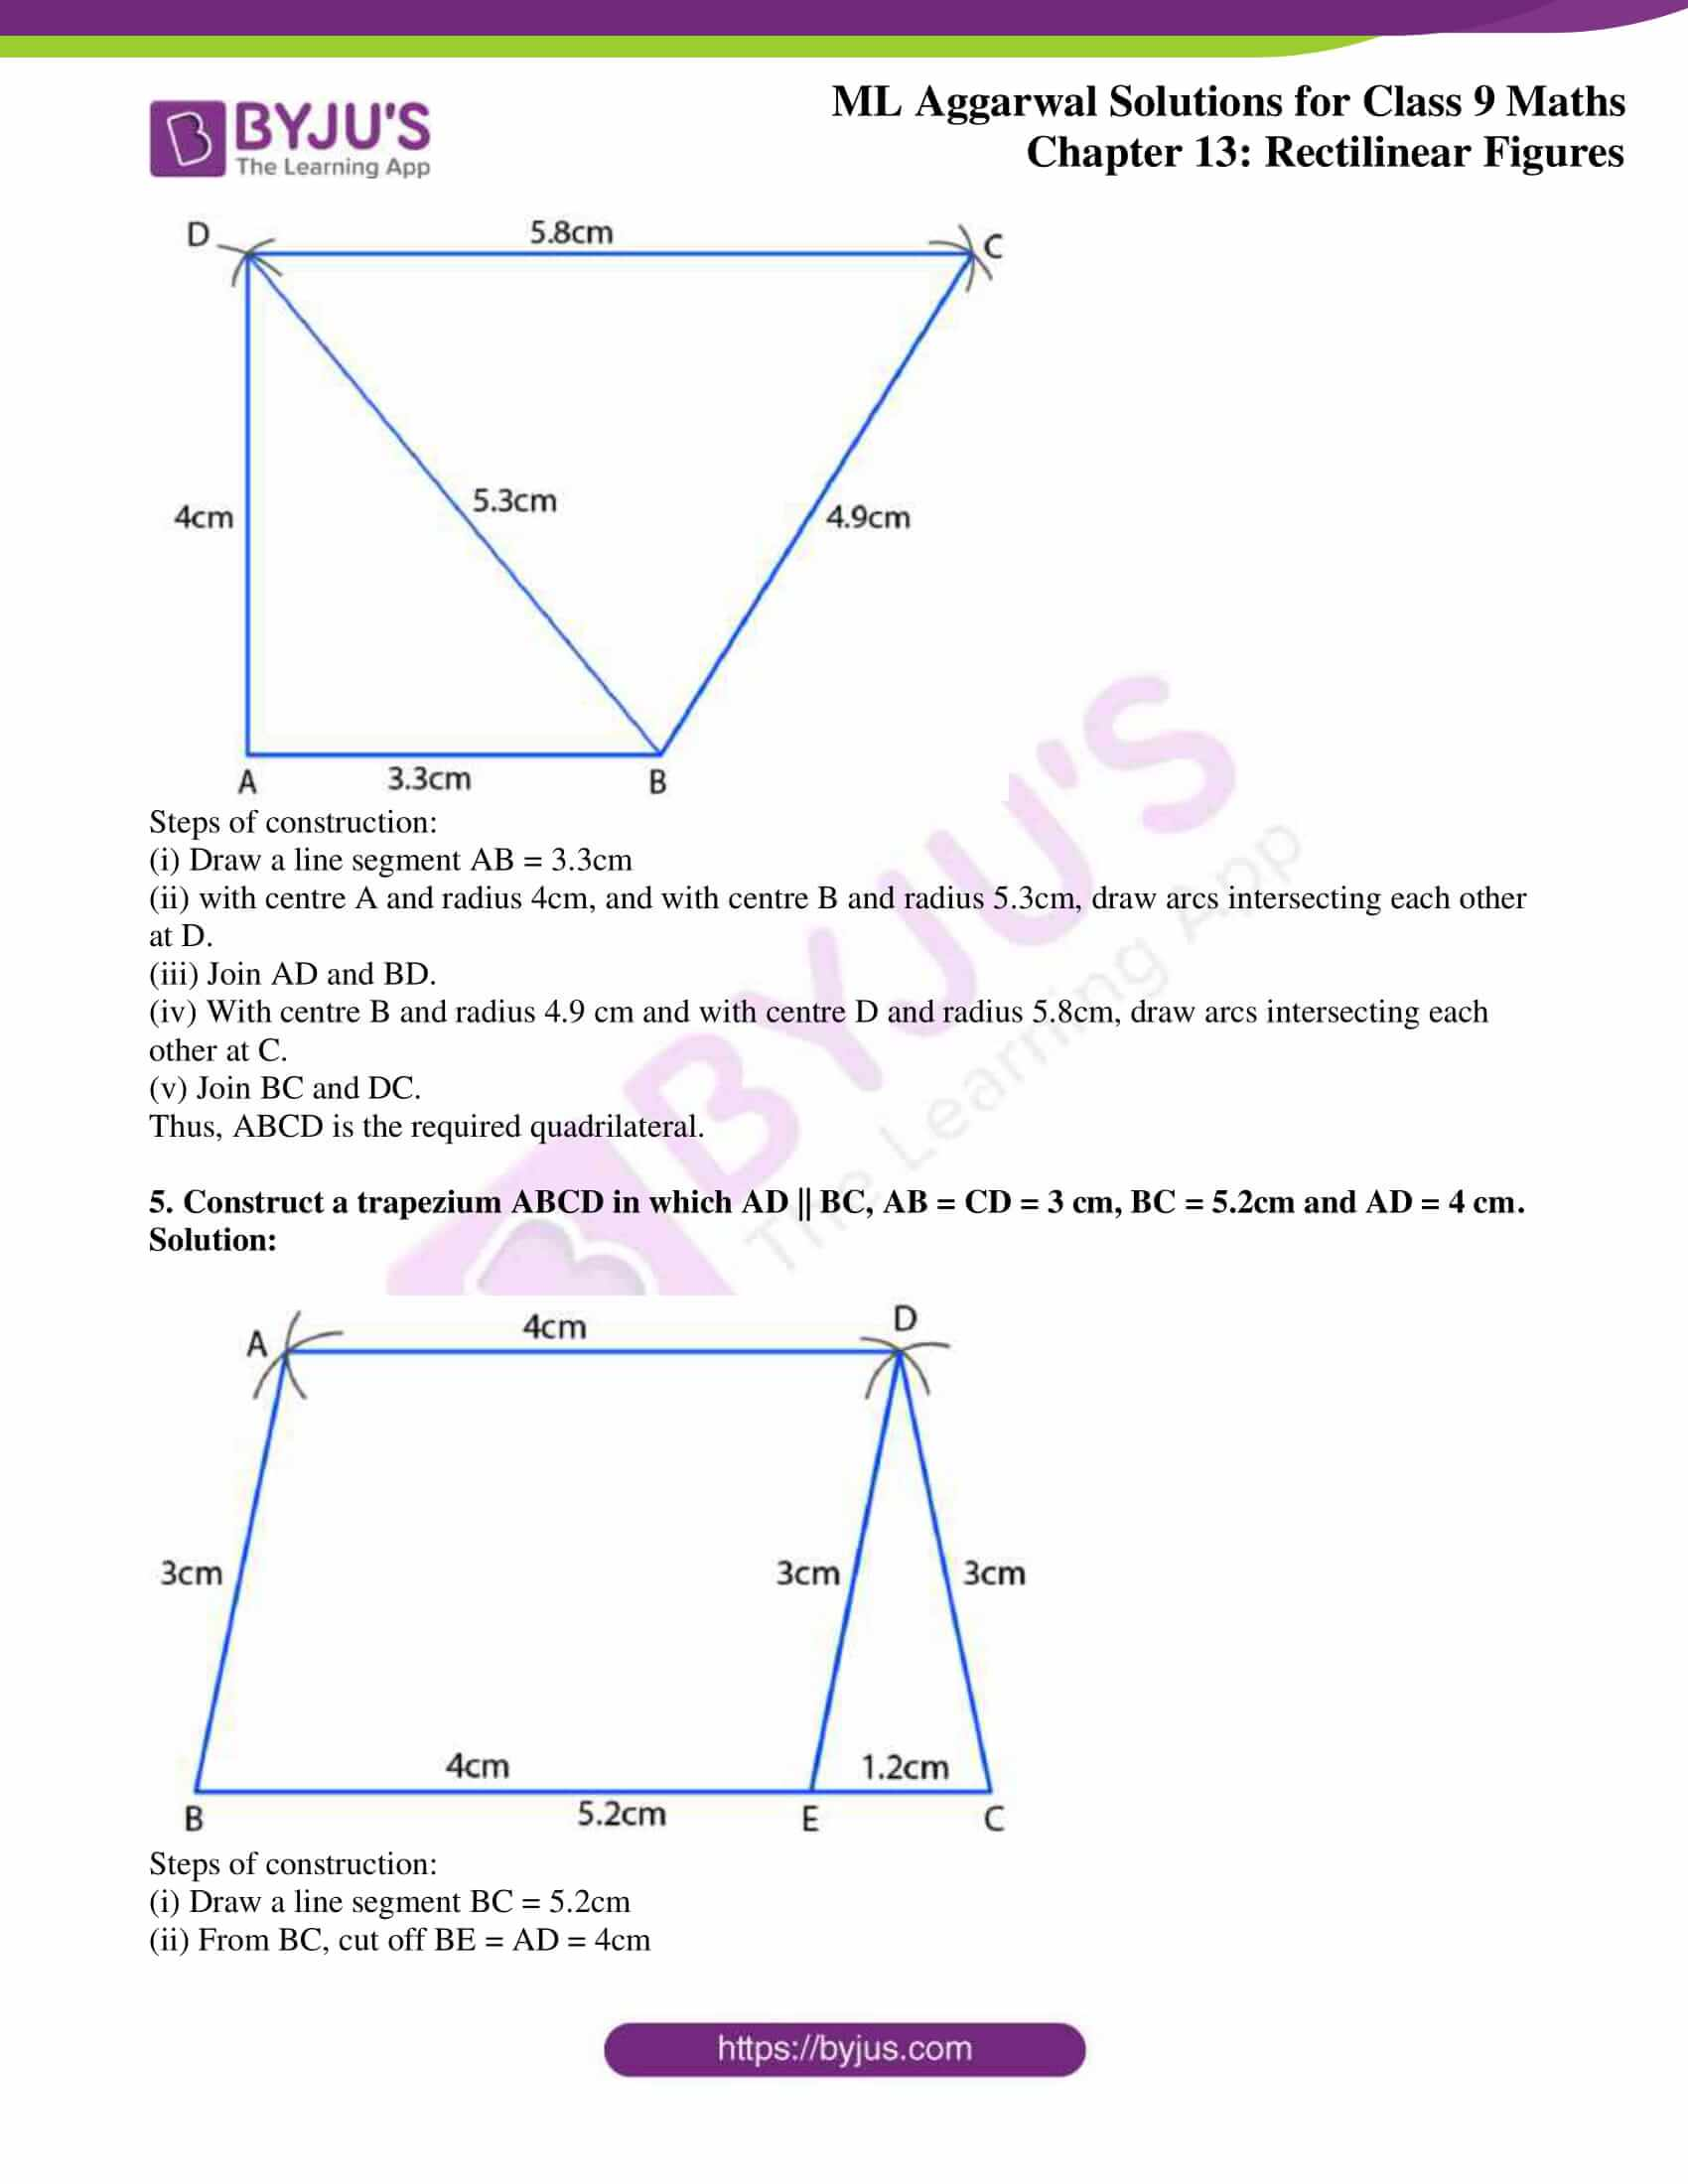 ml aggarwal solutions for class 9 maths chapter 13 26